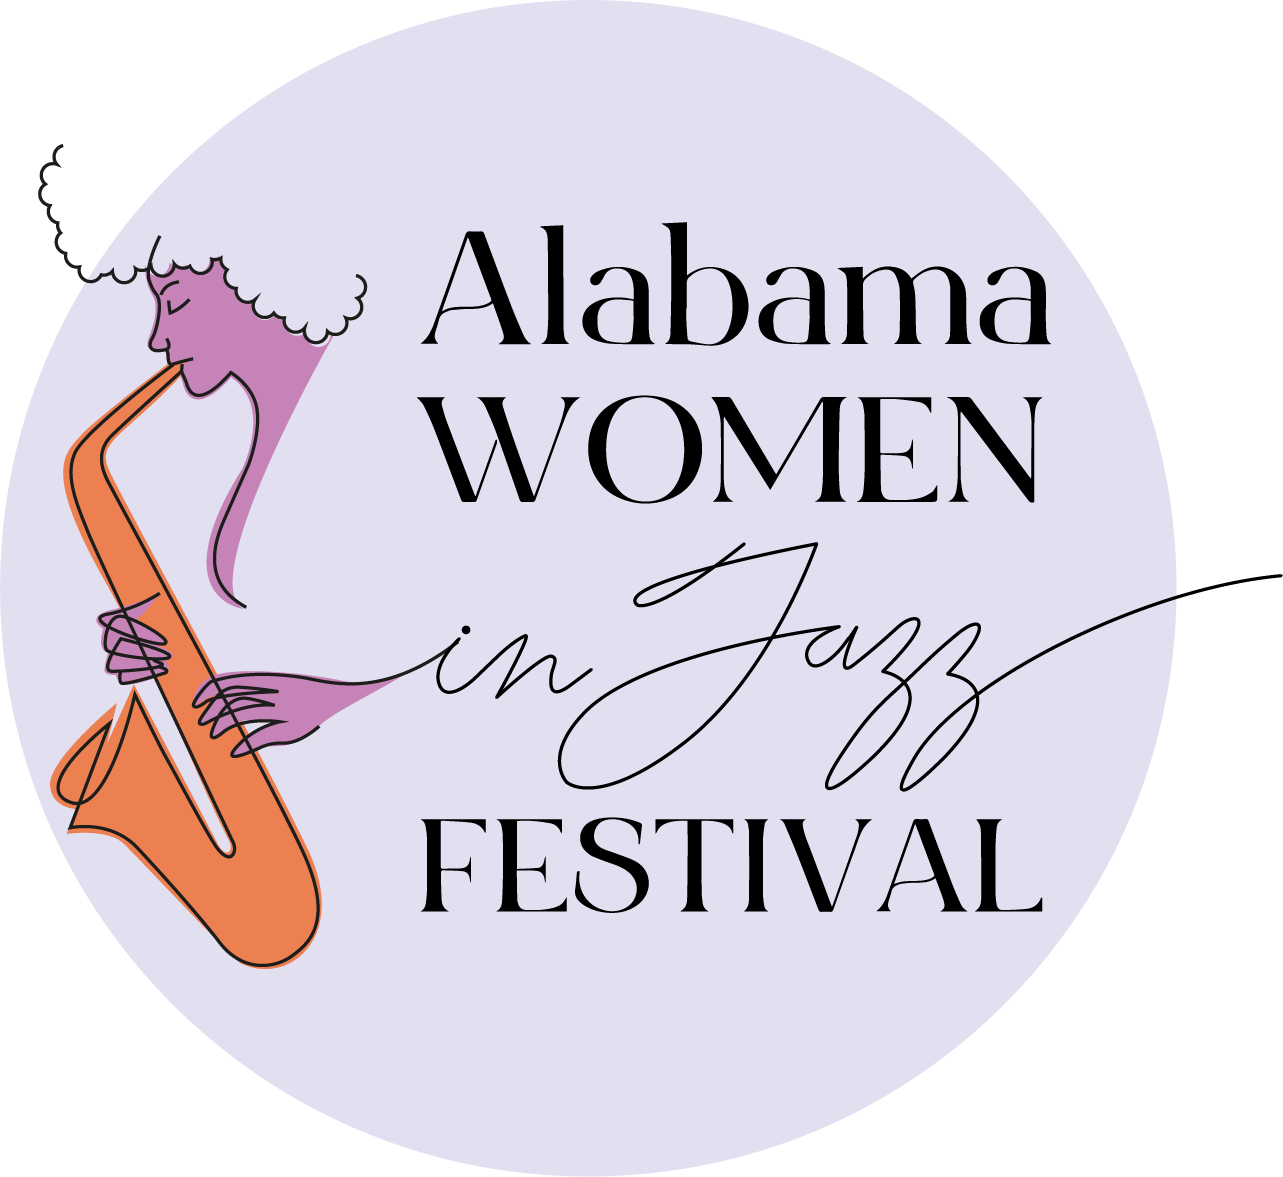 https://alabama-travel.s3.amazonaws.com/partners-uploads/photo/image/6047ee847342df00075fe4fe/Alabama Women in Jazz Festival 2.png